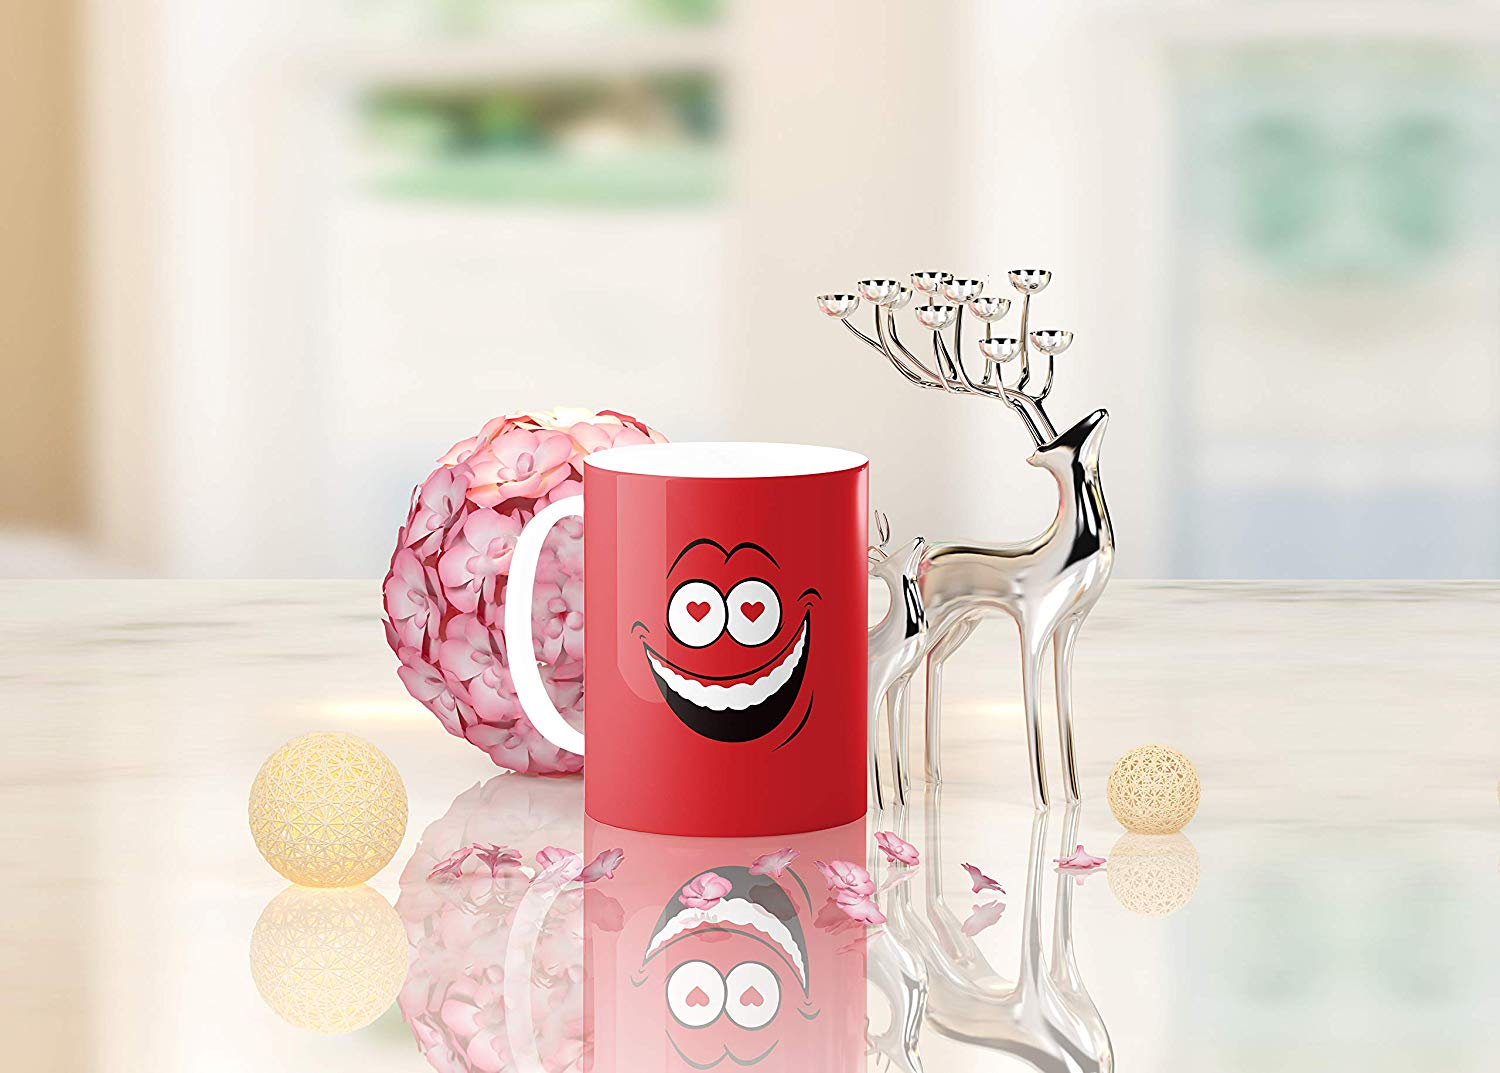 Heat Sensitive Color Changing Coffee Mug Funny Coffee Cup Red Loved Funny Face Design Funny Gift Idea B079FRF6YM 6